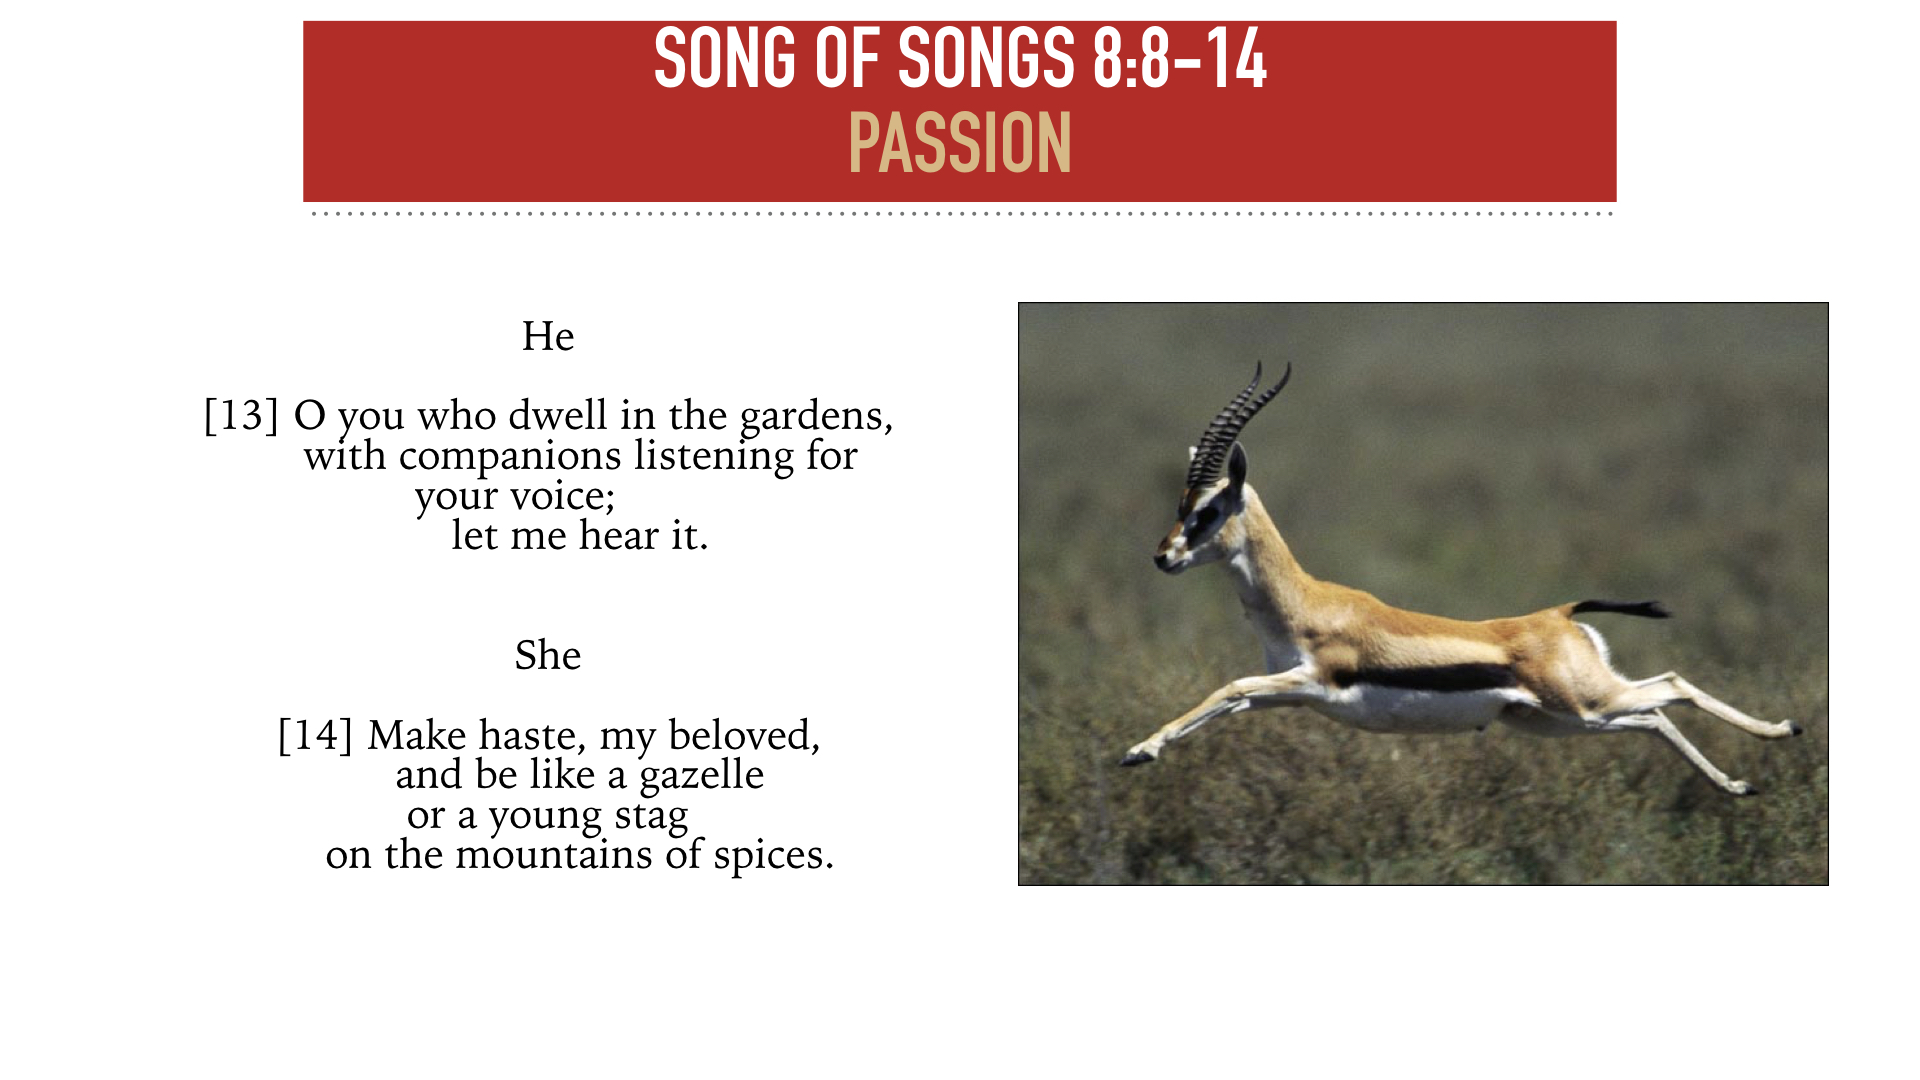 SONG OF SONGS 8:8-14.004.jpeg